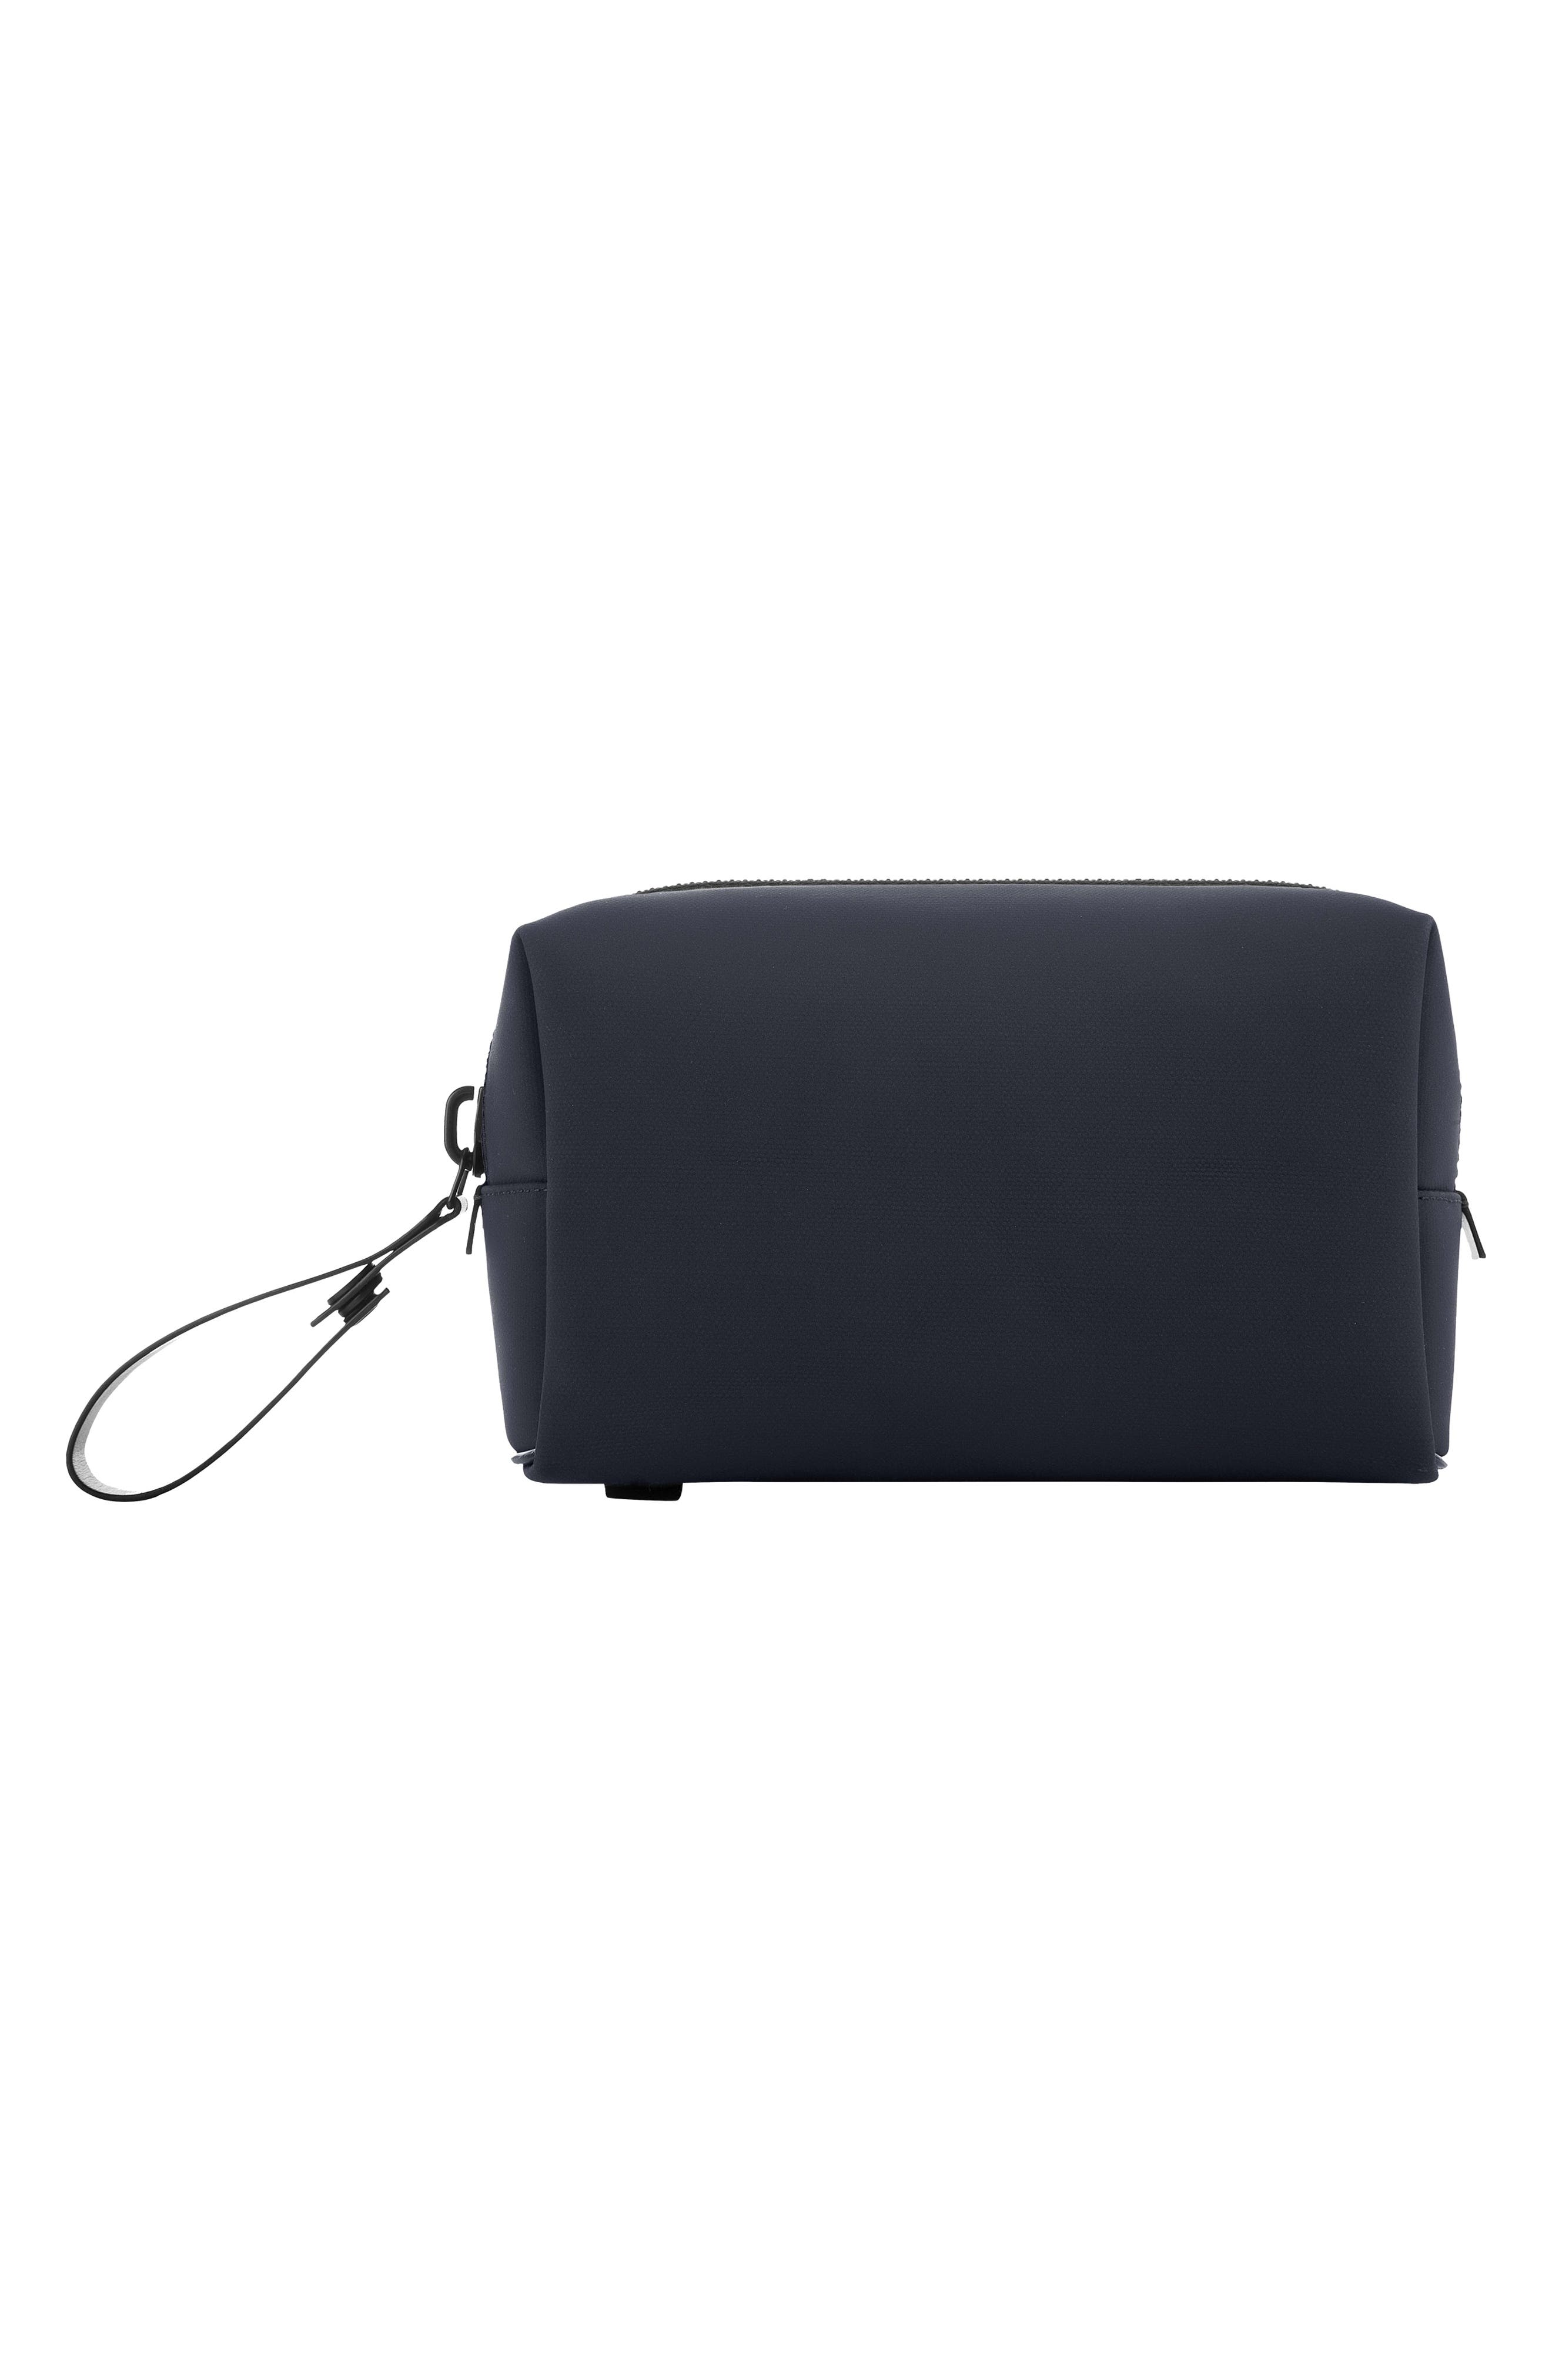 Nylon Dopp Kit,                             Alternate thumbnail 7, color,                             BLACK NYLON/ BLACK LEATHER